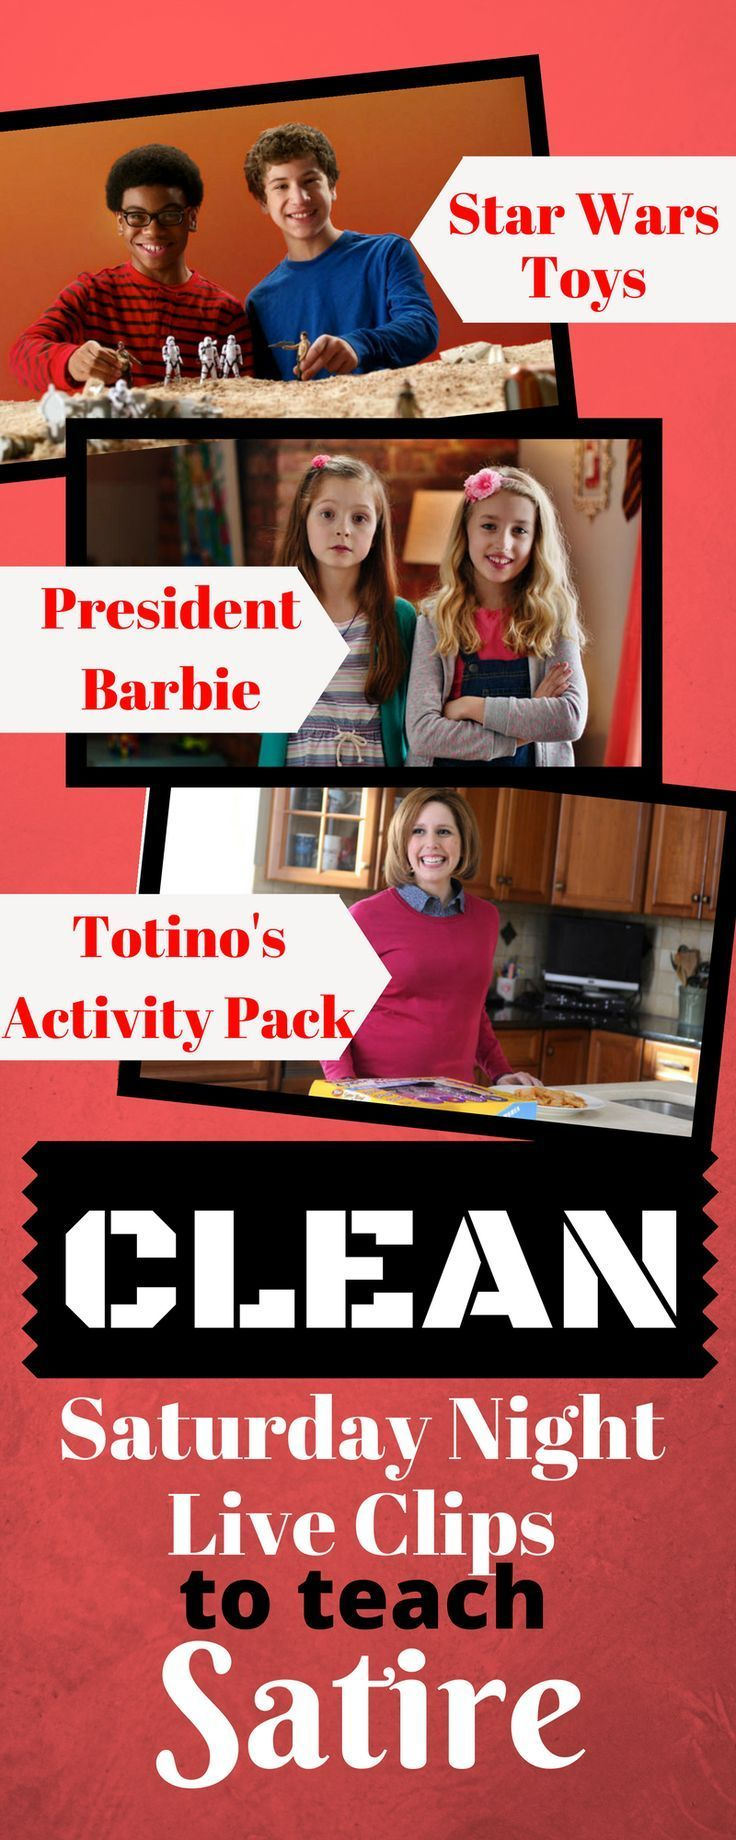 Includes free worksheet and links to three hilarious, but clean and appropriate, Saturday Night Live commercial parodies to teach satire to high school students.